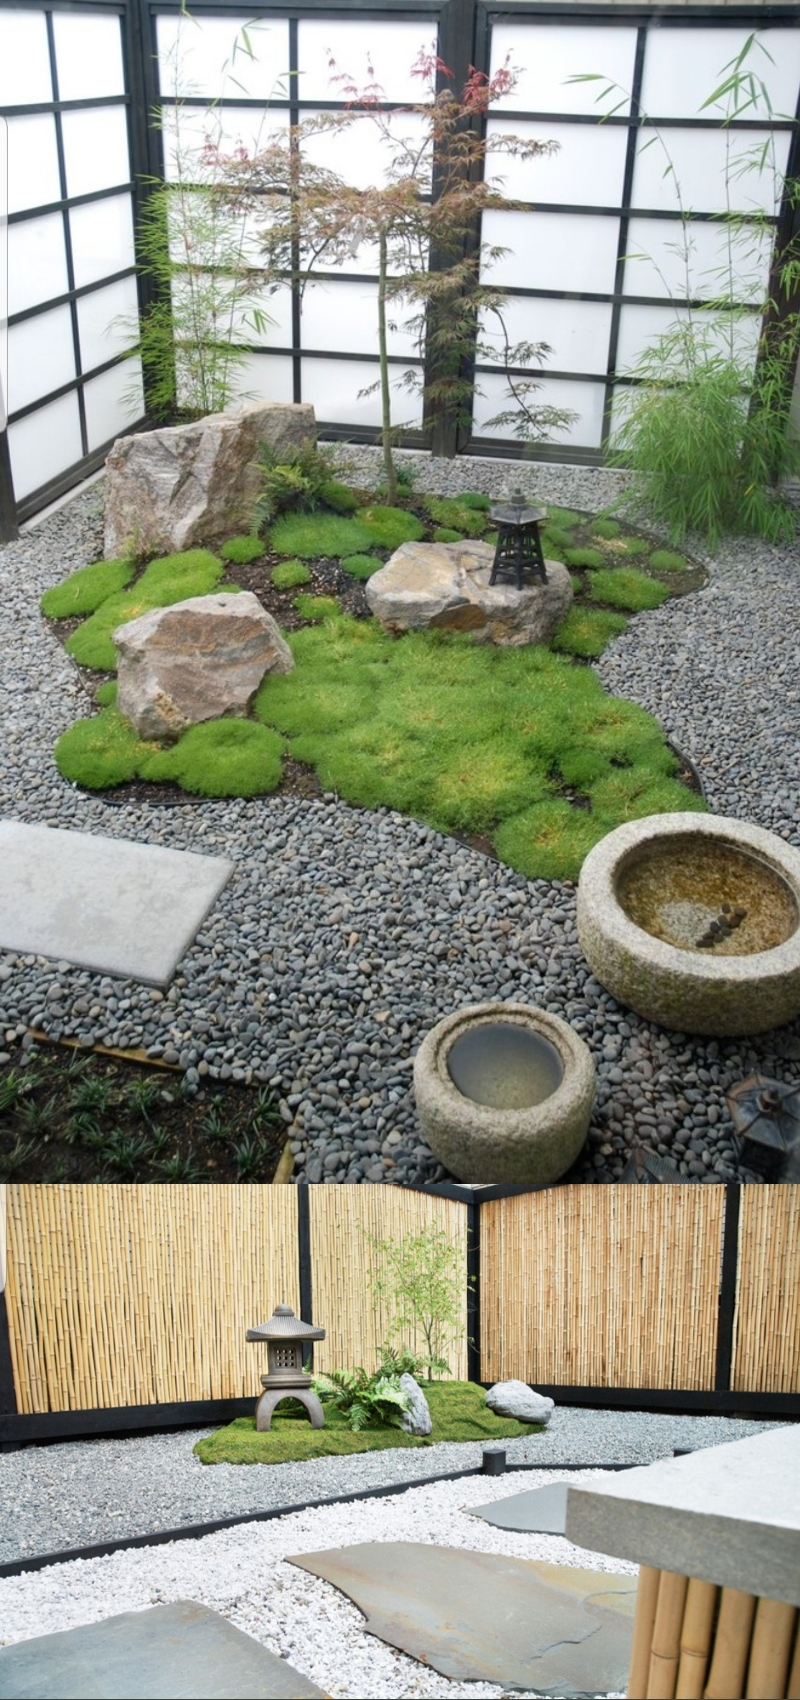 21+ Beautiful Zen Garden Ideas 2019 (How to Build Zen ...